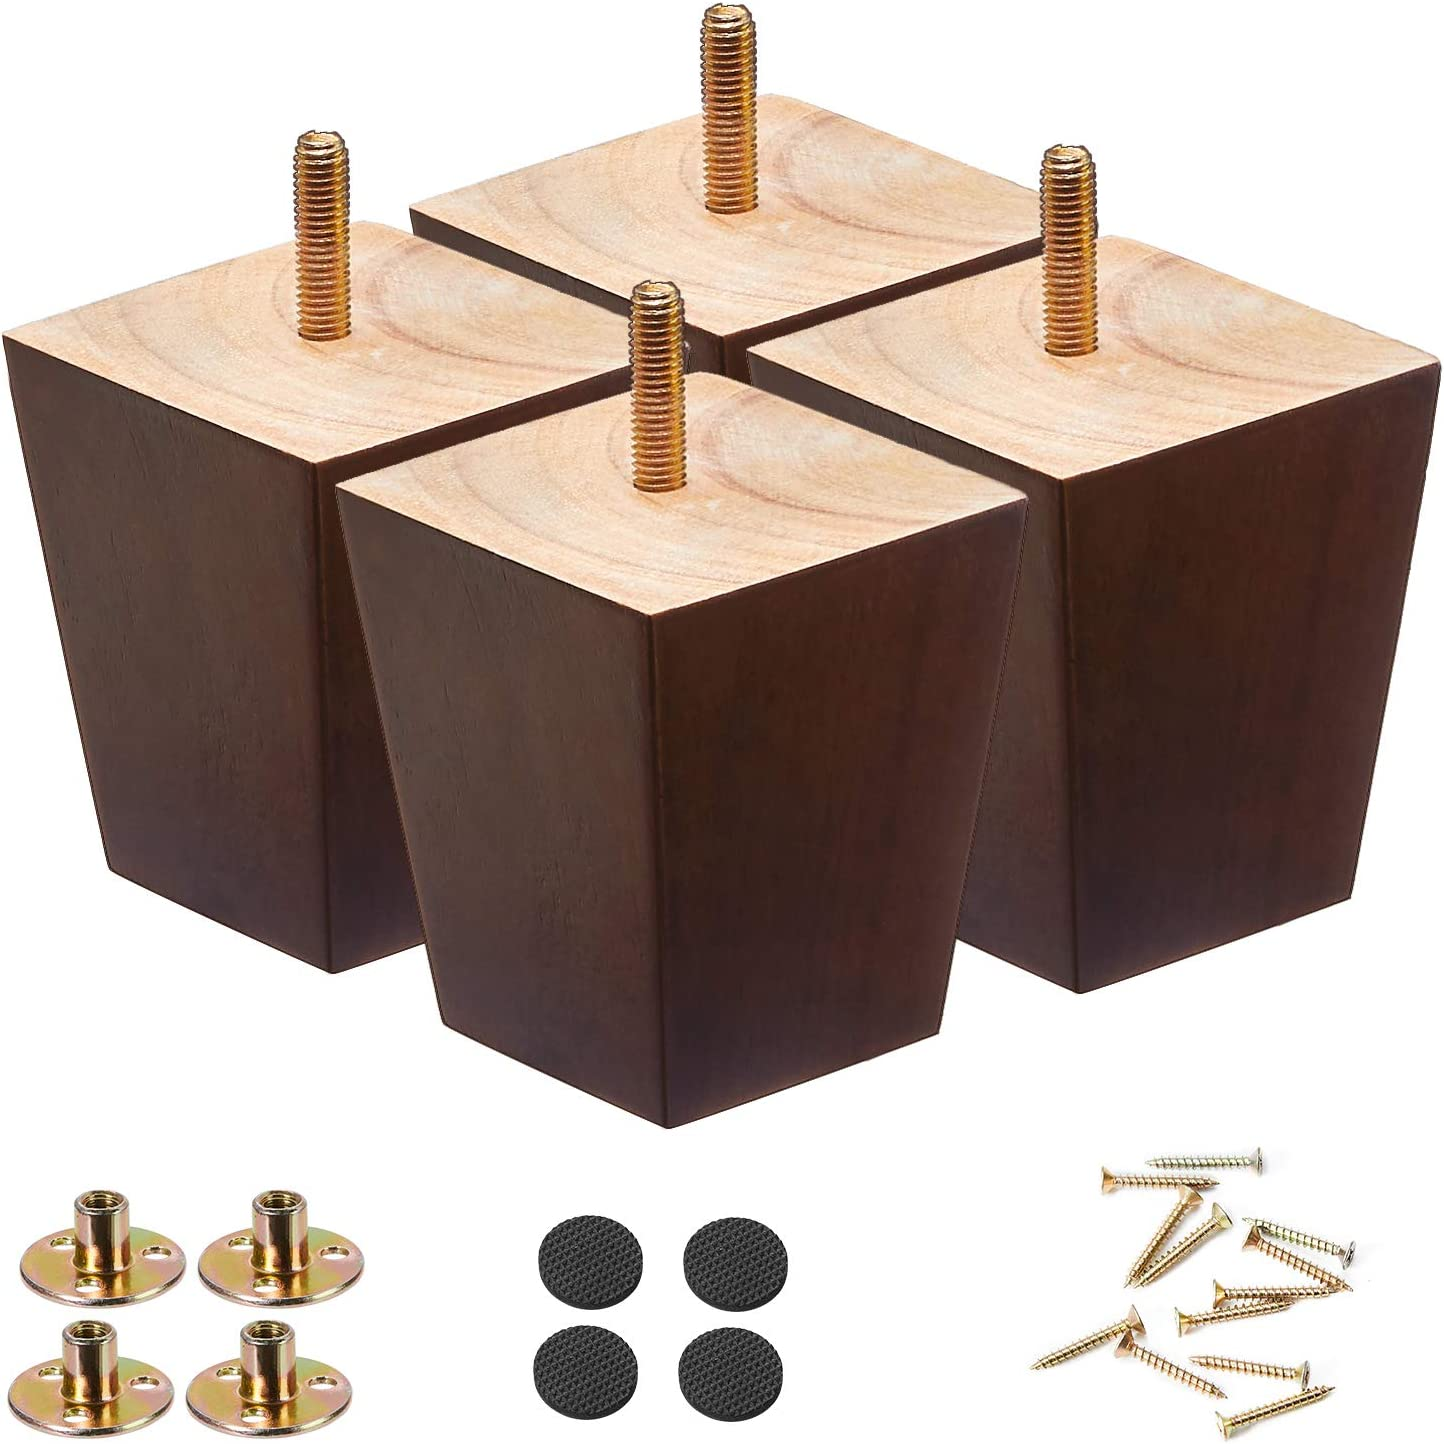 Wood Furniture Legs 3 inch Sofa Legs Pack of 4,Couch Legs Square Brown,Mid century desk legs,Sofa replacement parts, For Dresser legs Sideboard Recliner couch Circle chair Couch riser Coffee Table